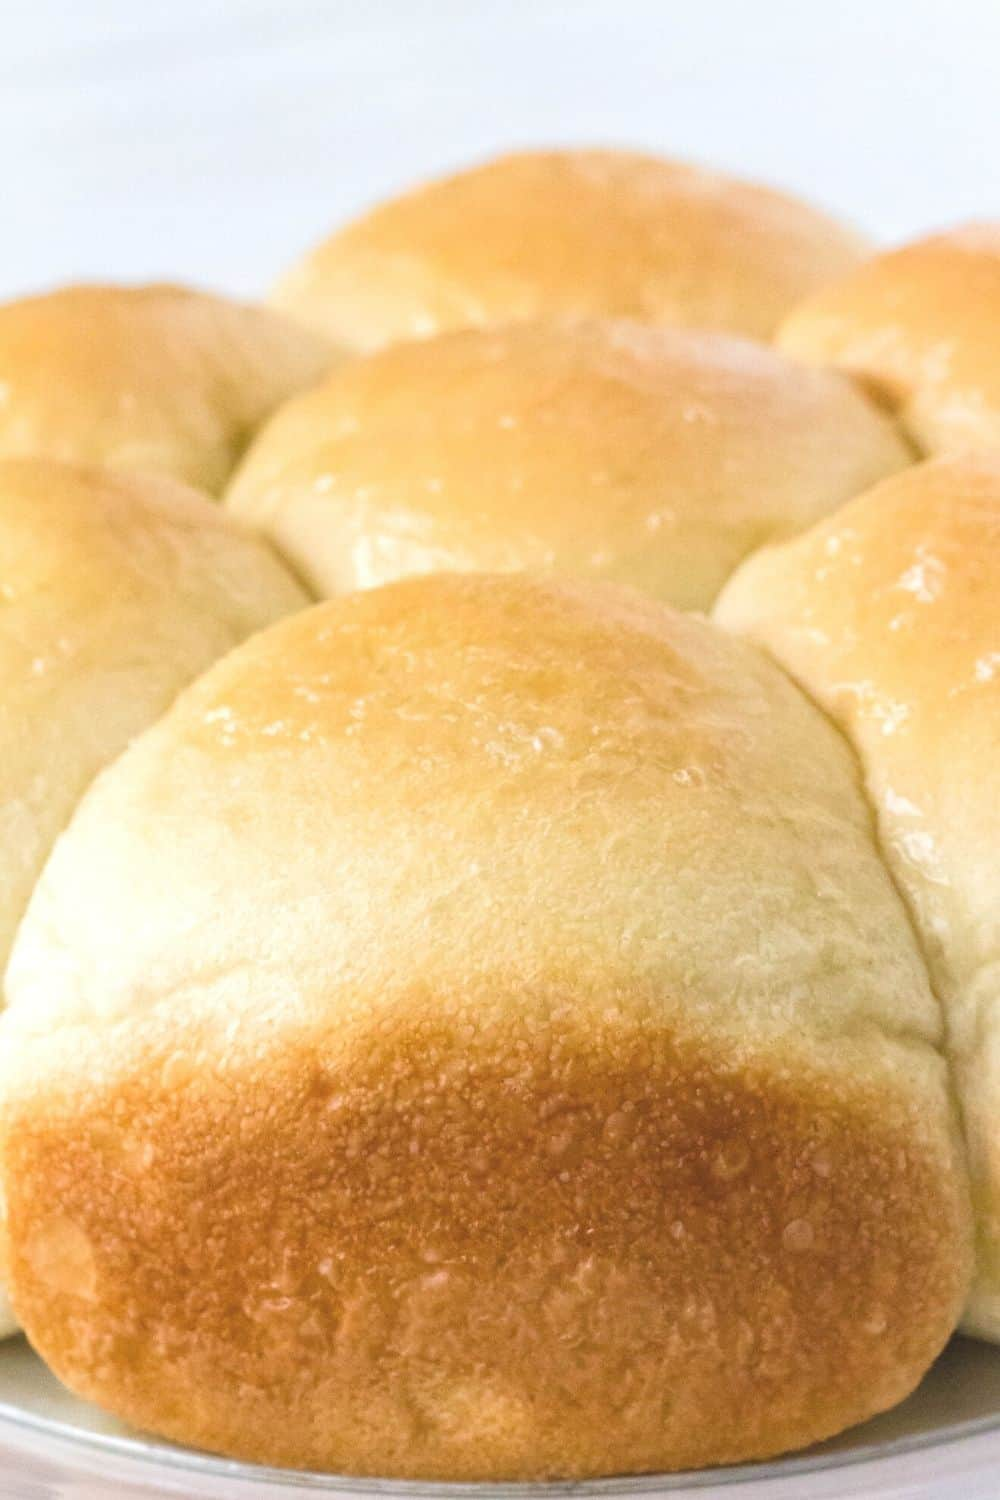 close-up view of freshly baked rhodes rolls